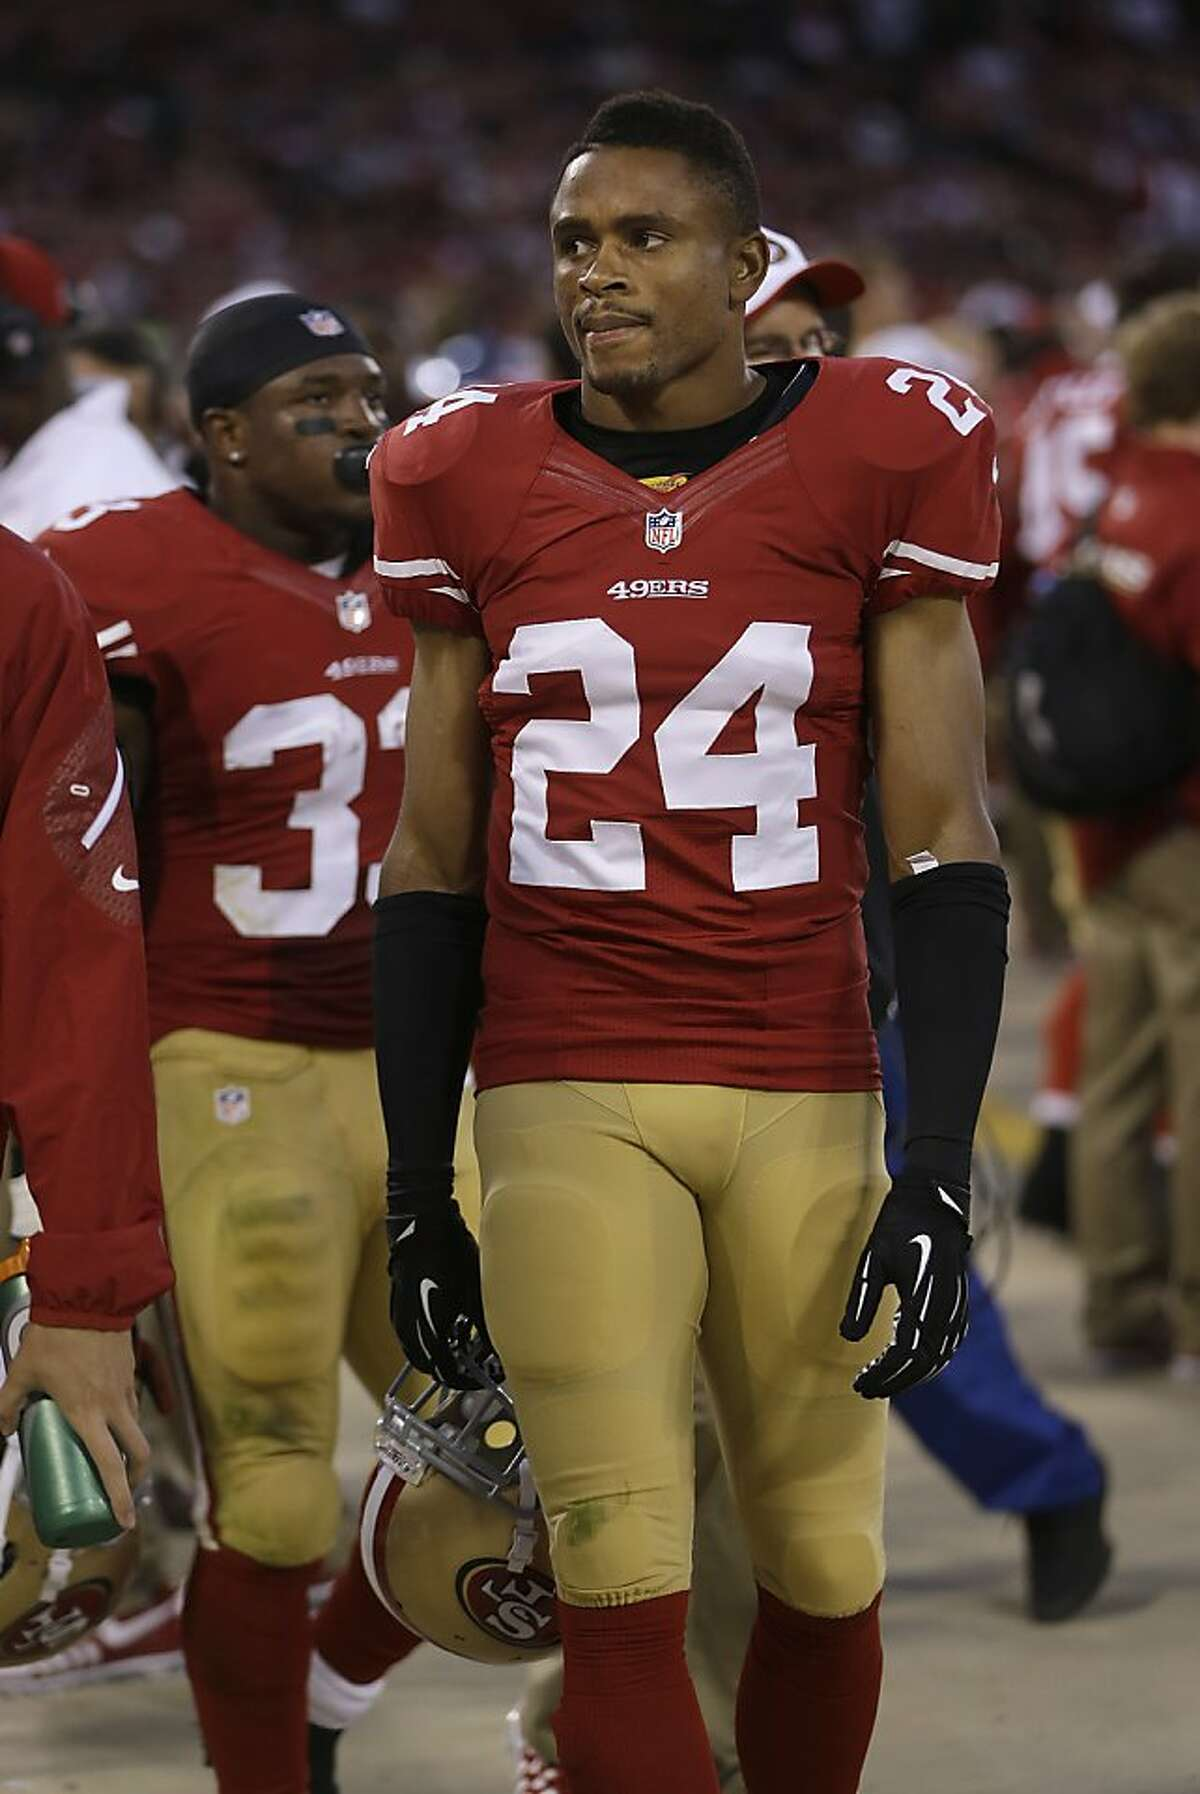 San Francisco 49ers cornerback Nnamdi Asomugha (24) walks on the sideline during the fourth quarter of an NFL preseason football game against the Minnesota Vikings in San Francisco, Sunday, Aug. 25, 2013. (AP Photo/Marcio Jose Sanchez)